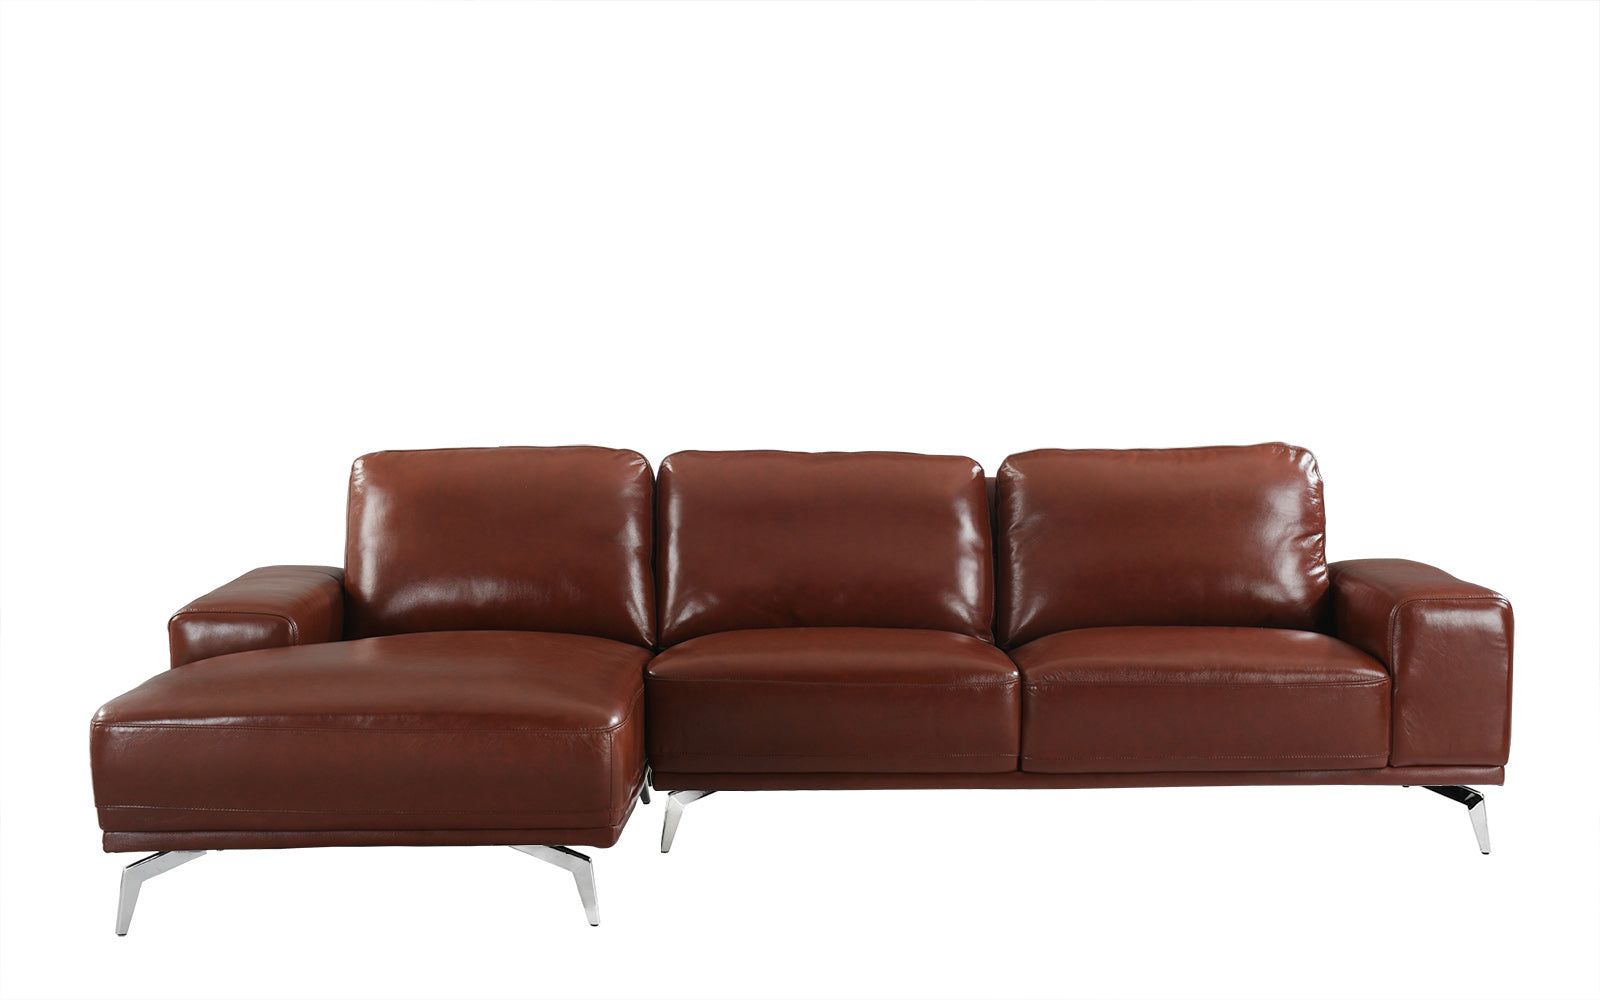 L Shape Sectional Sofa Left Chaise Image